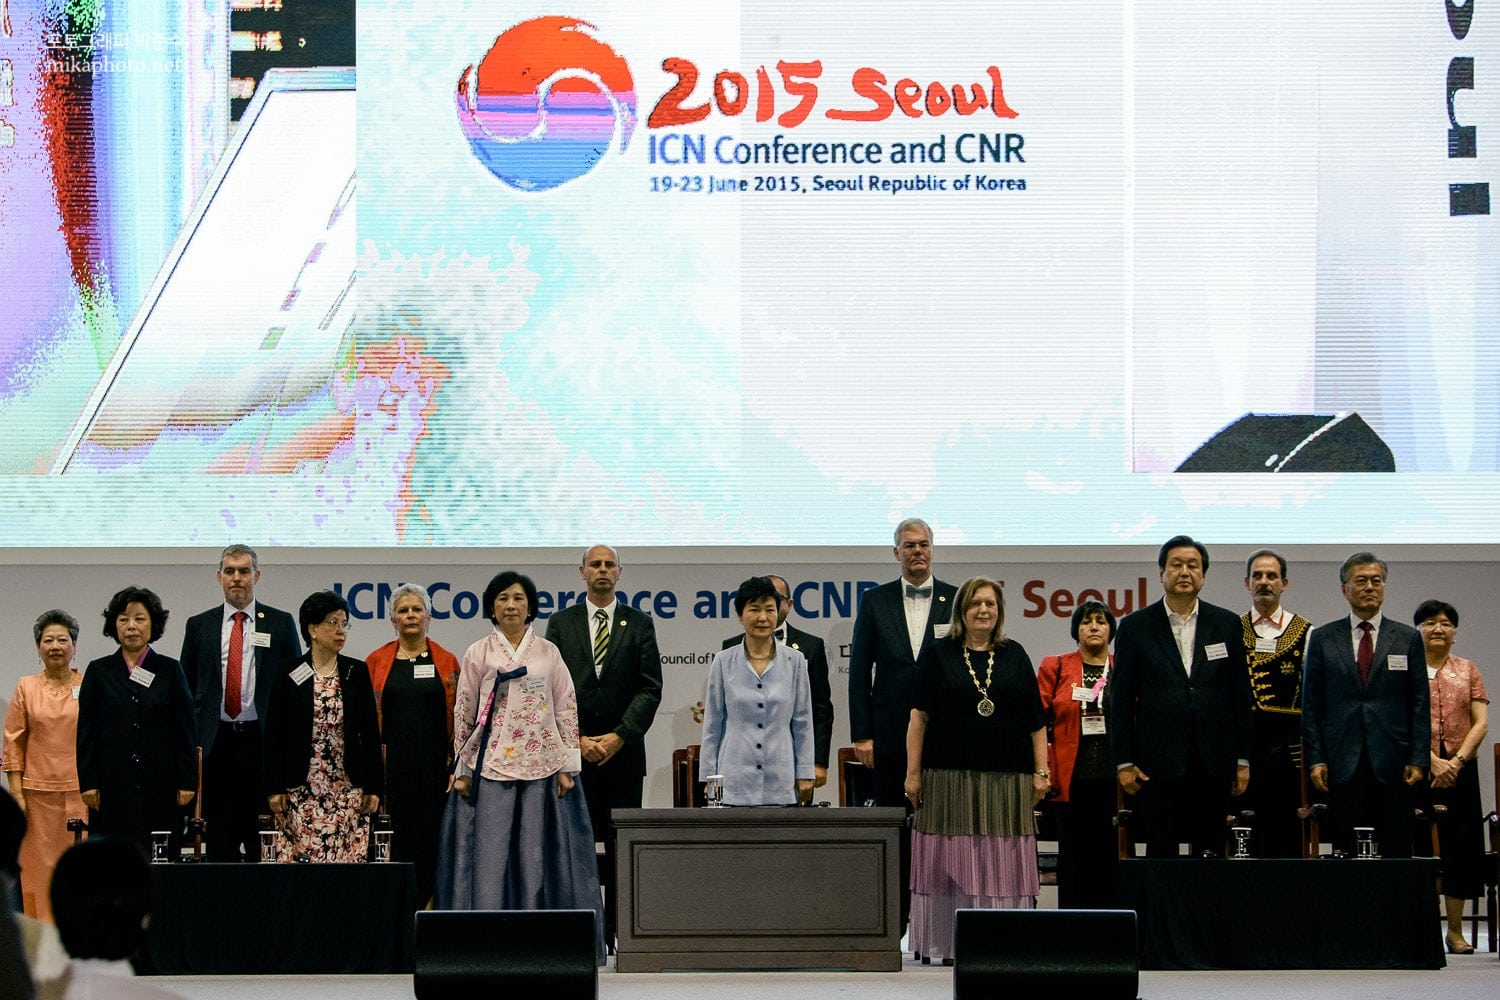 South Korean president Park Geun-hye joins the opening ceremony of ICN 2015.